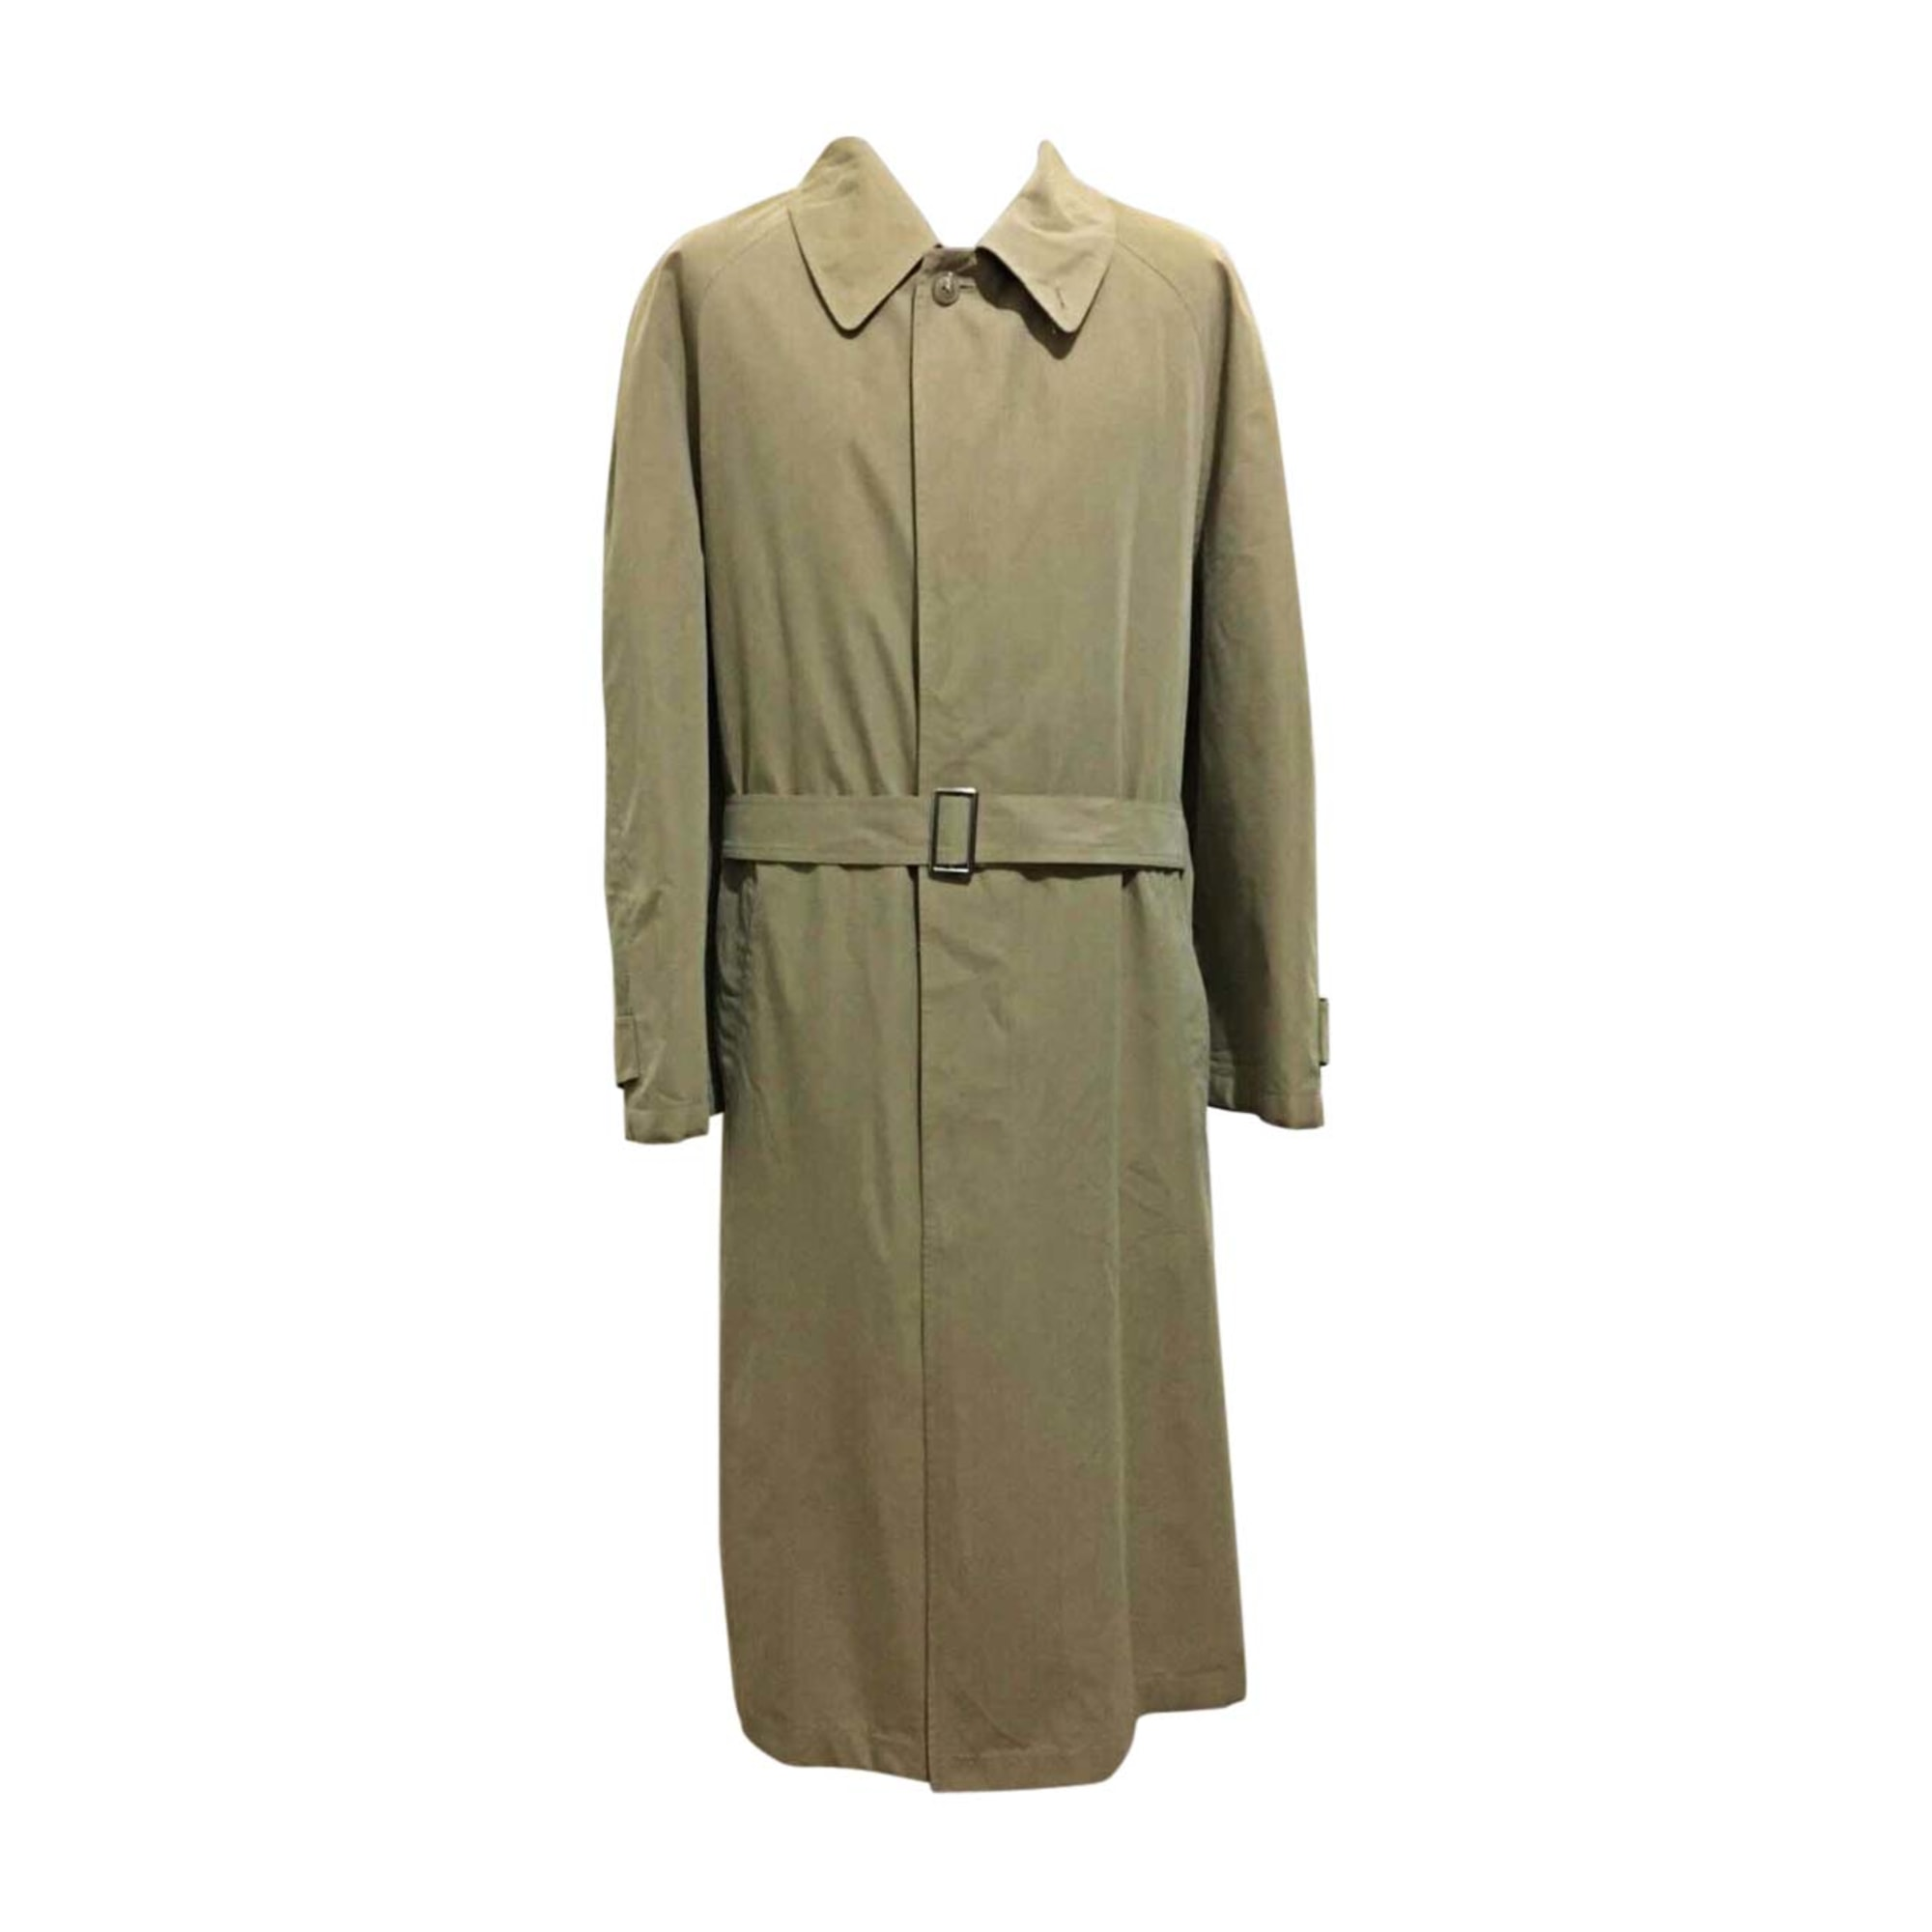 Imperméable, trench DIOR HOMME Beige, camel